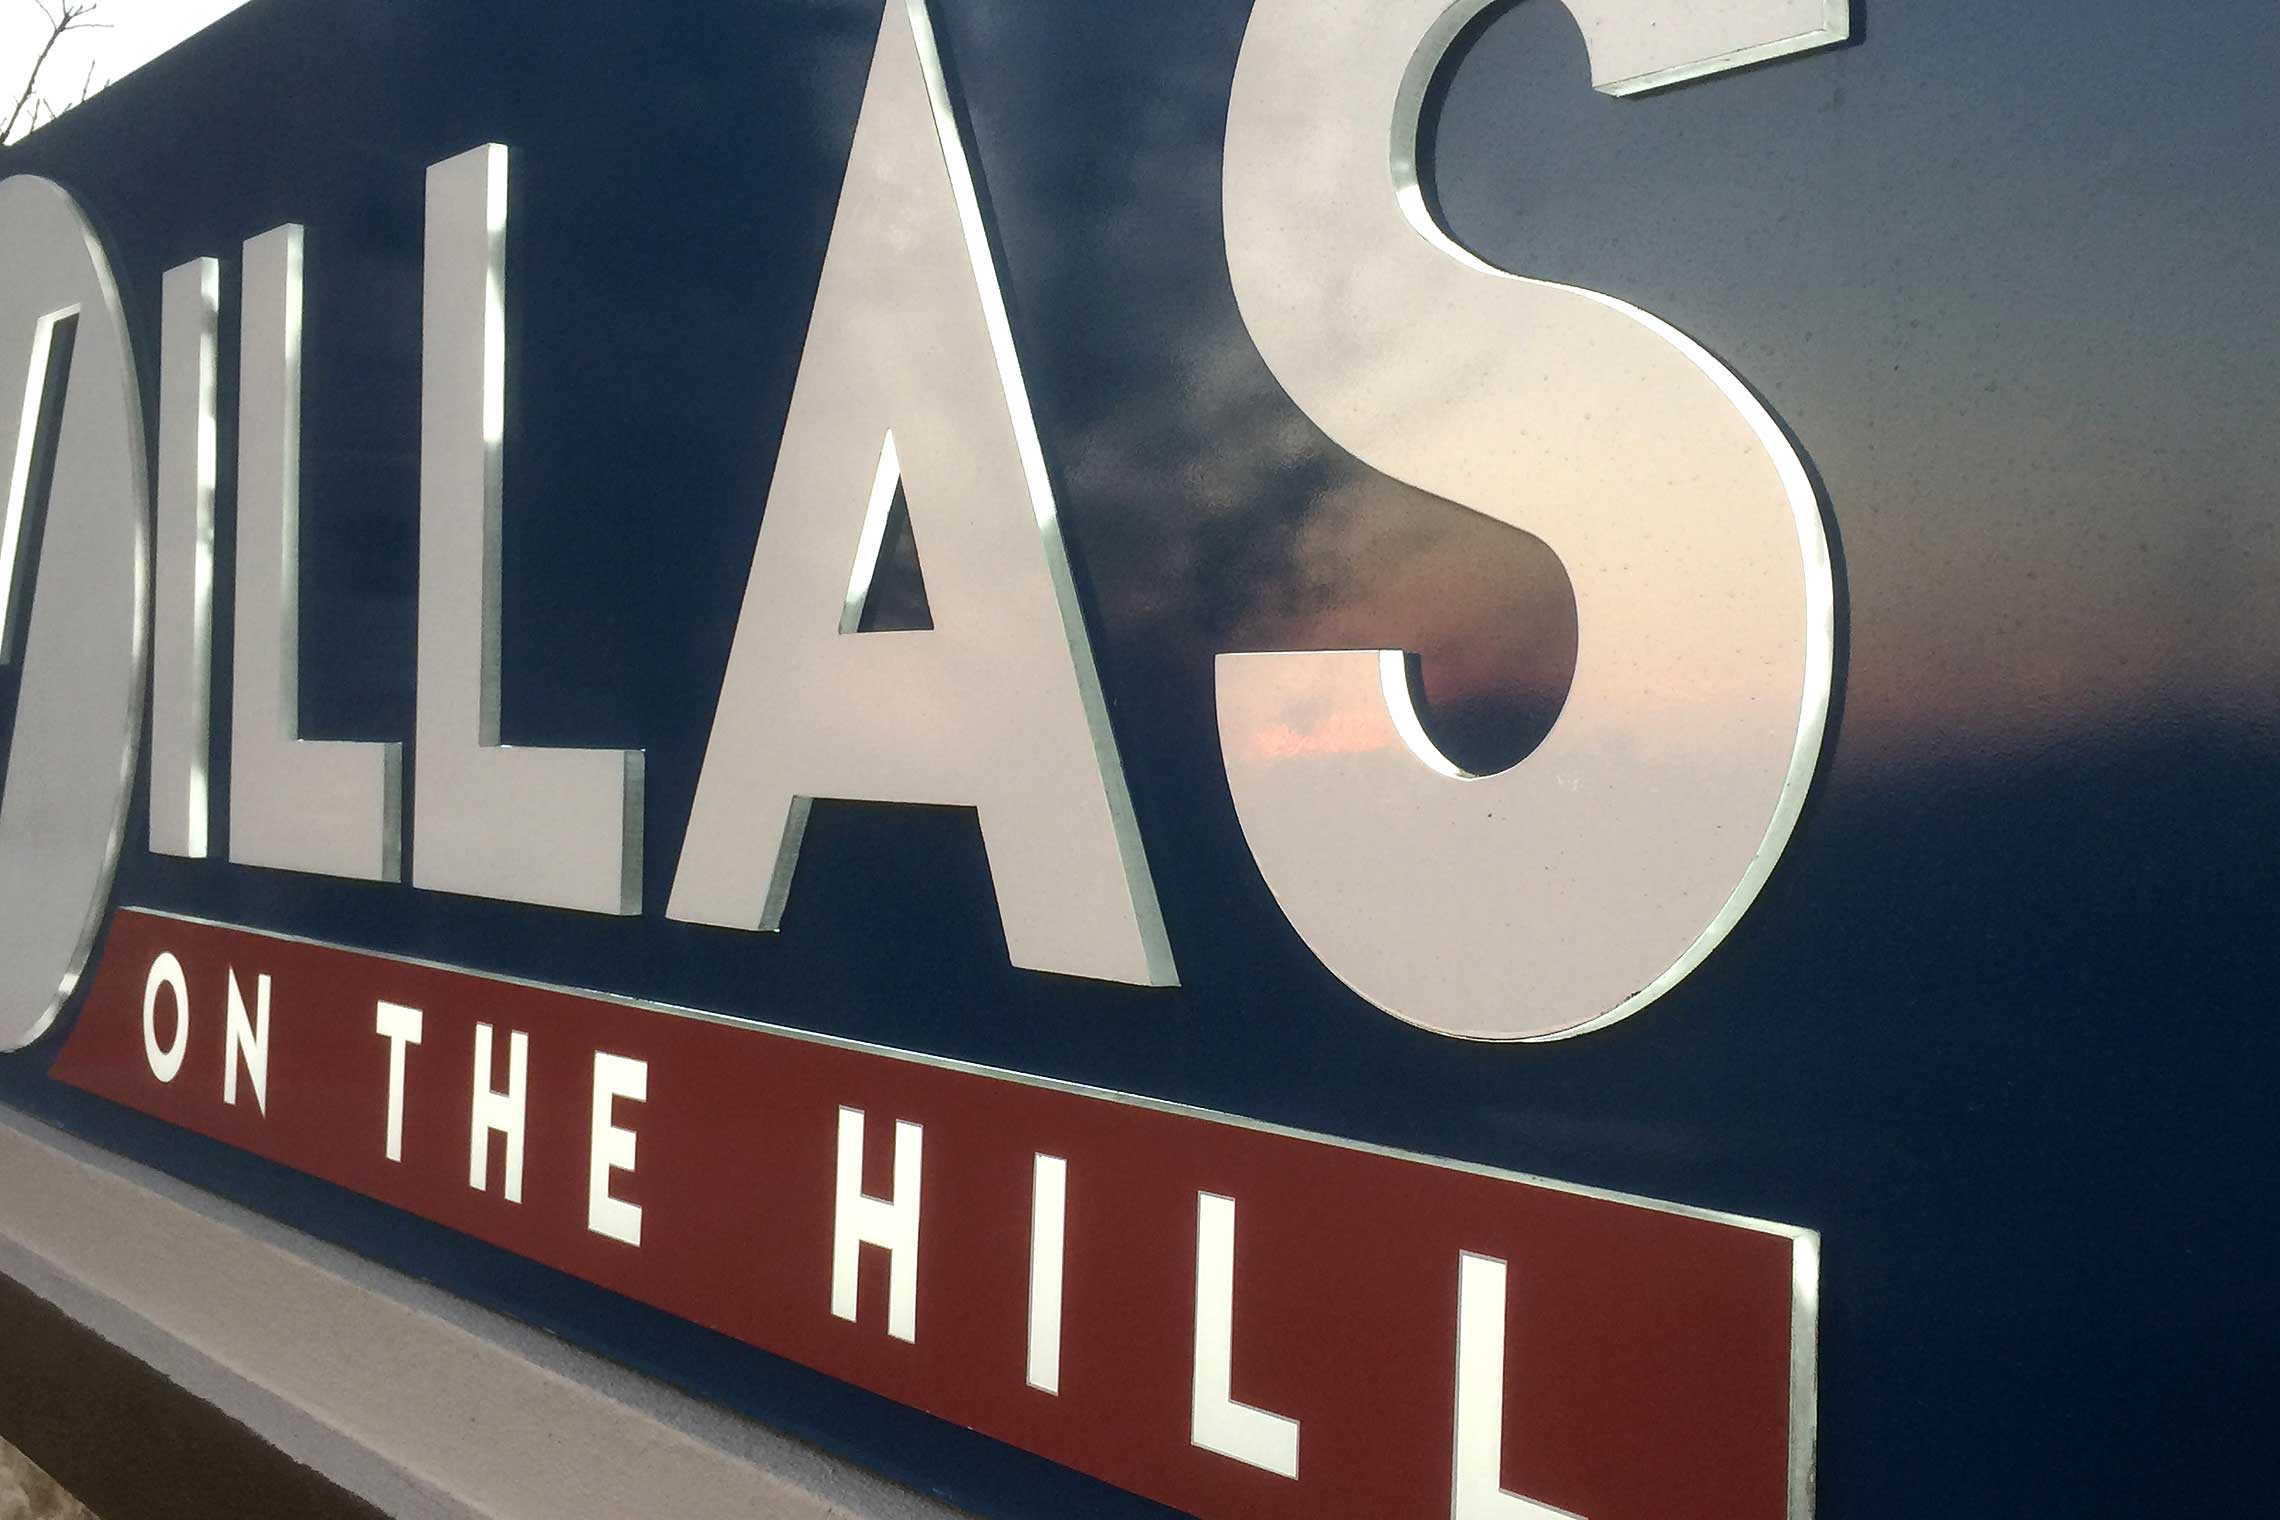 Villas on the Hill Apartments - Painted Aluminum Cabinet Monument with LED Push-Thru Edge-Lit Letters